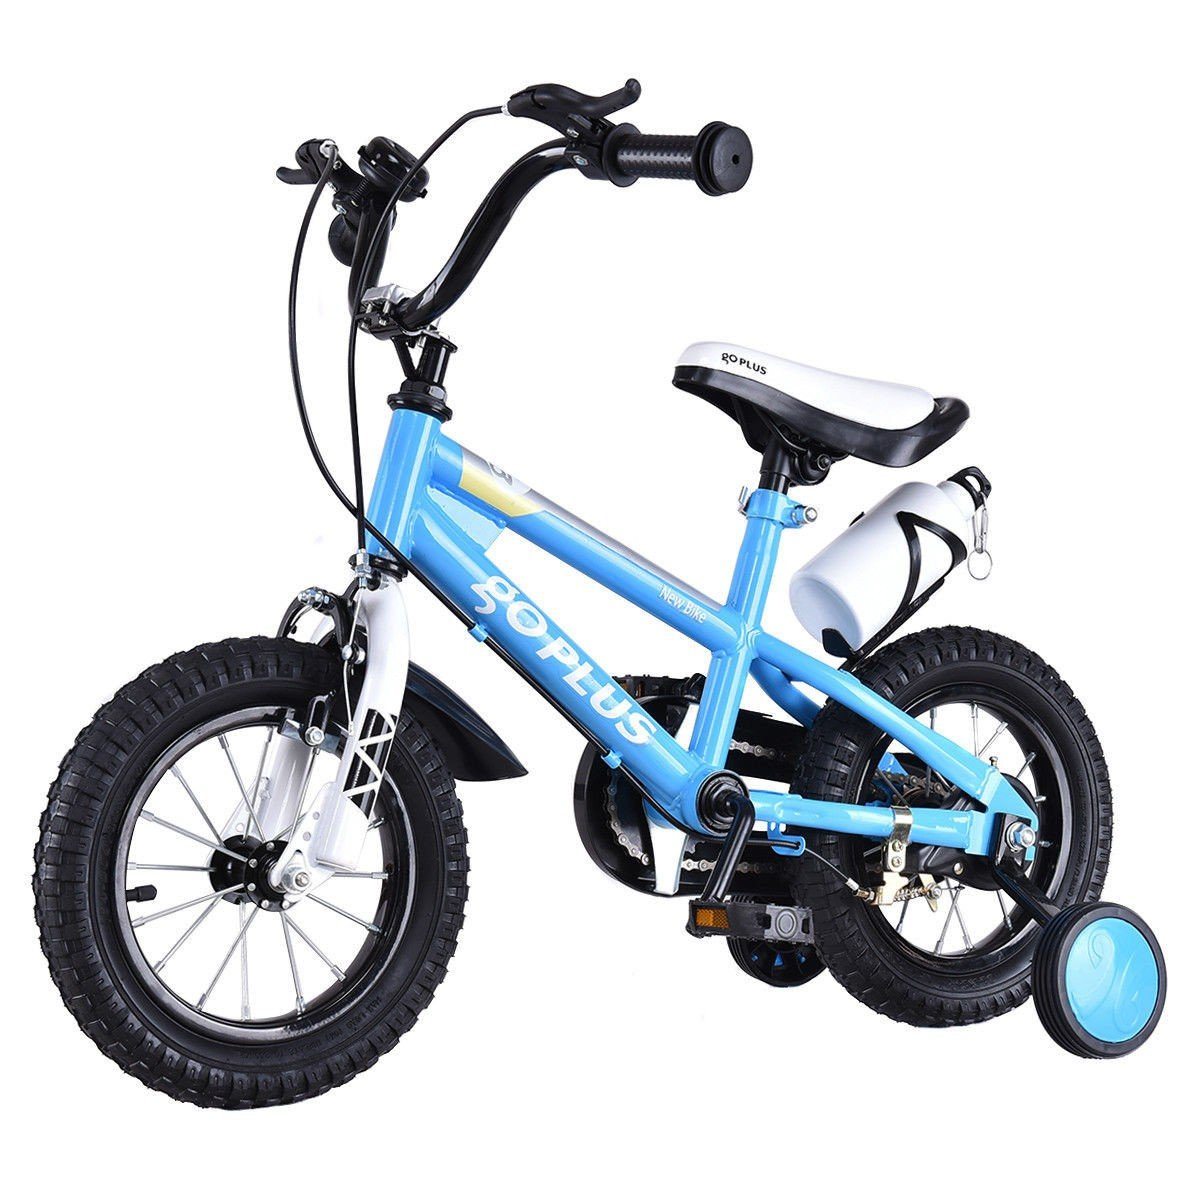 choice 12'' Freestyle Children Boys & Girls Bicycle w/Training Wheels Products (Blue) by choice